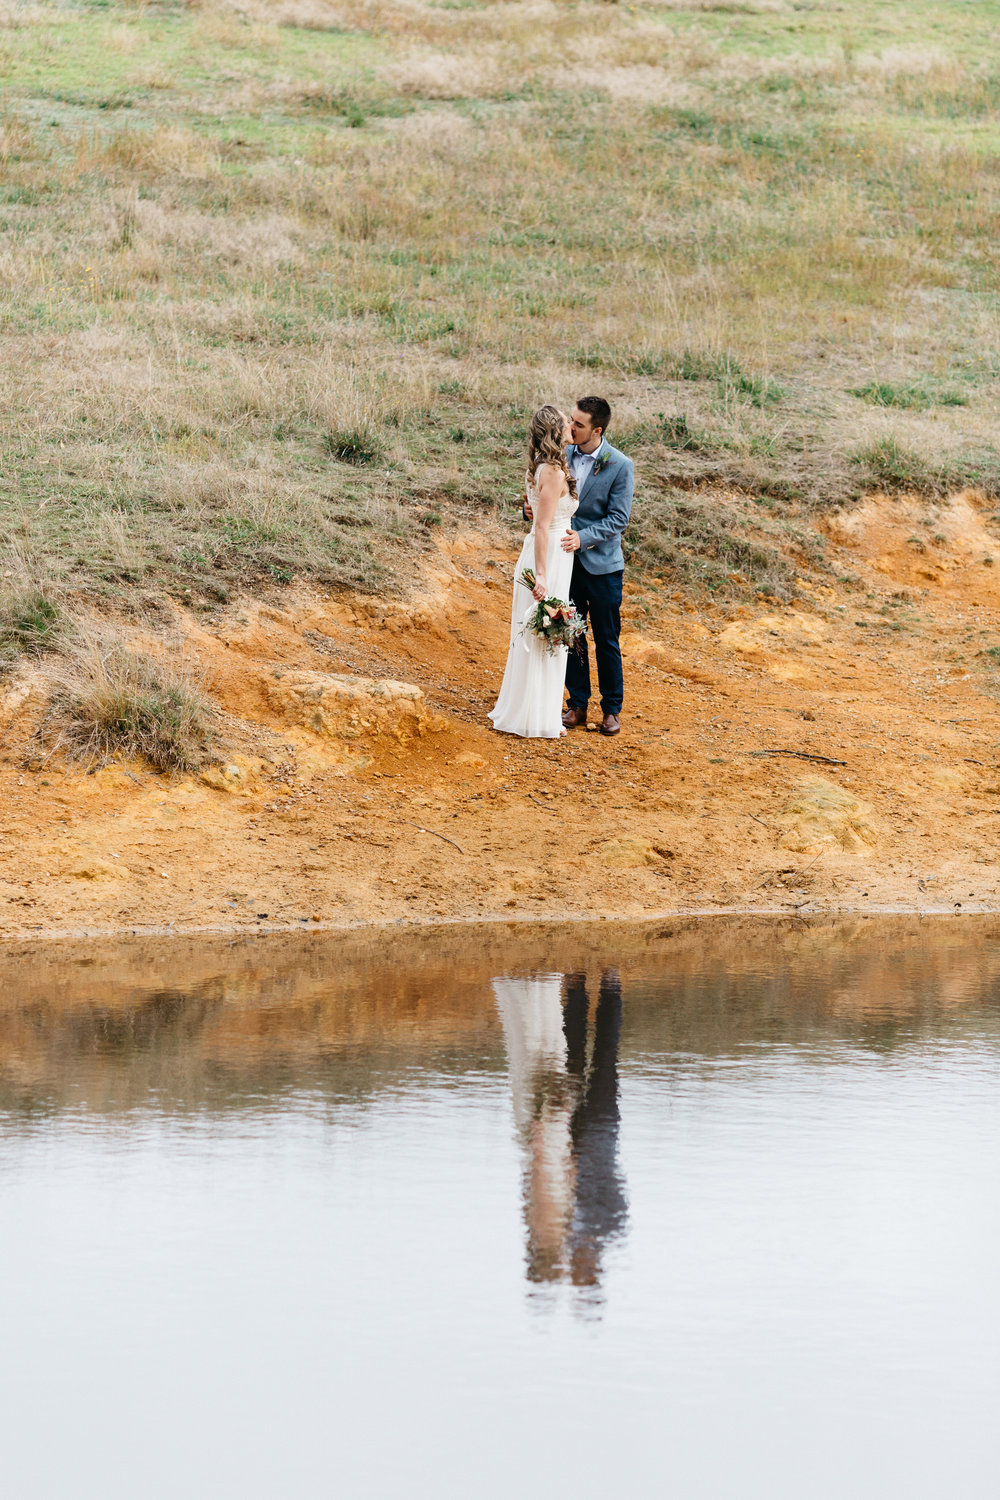 Mylor Farm Elopement South Australia 031.jpg